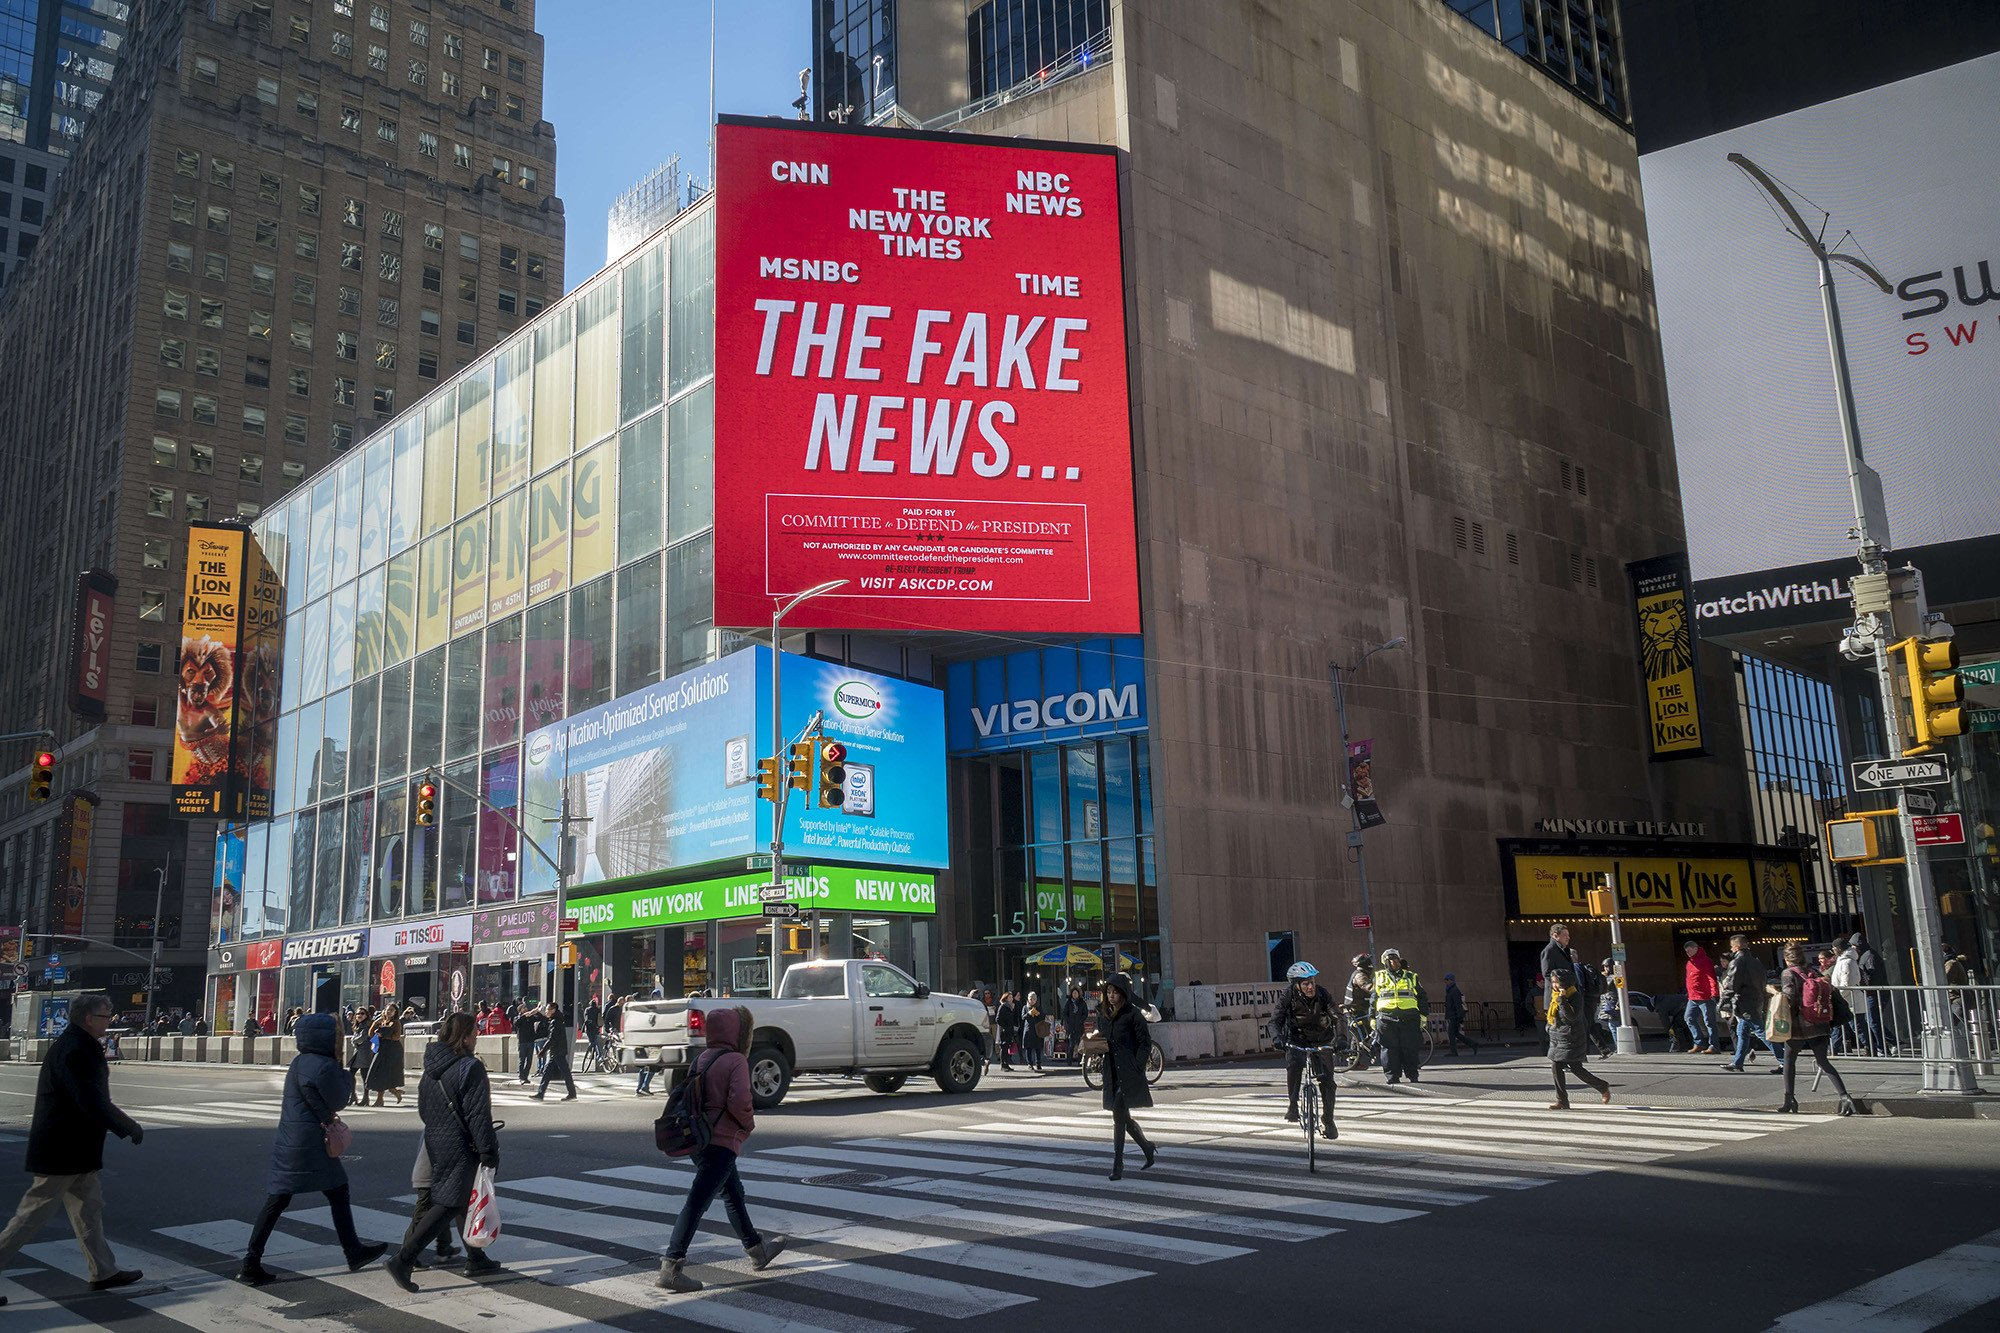 'Fake News' billboard pulled down in Times Square